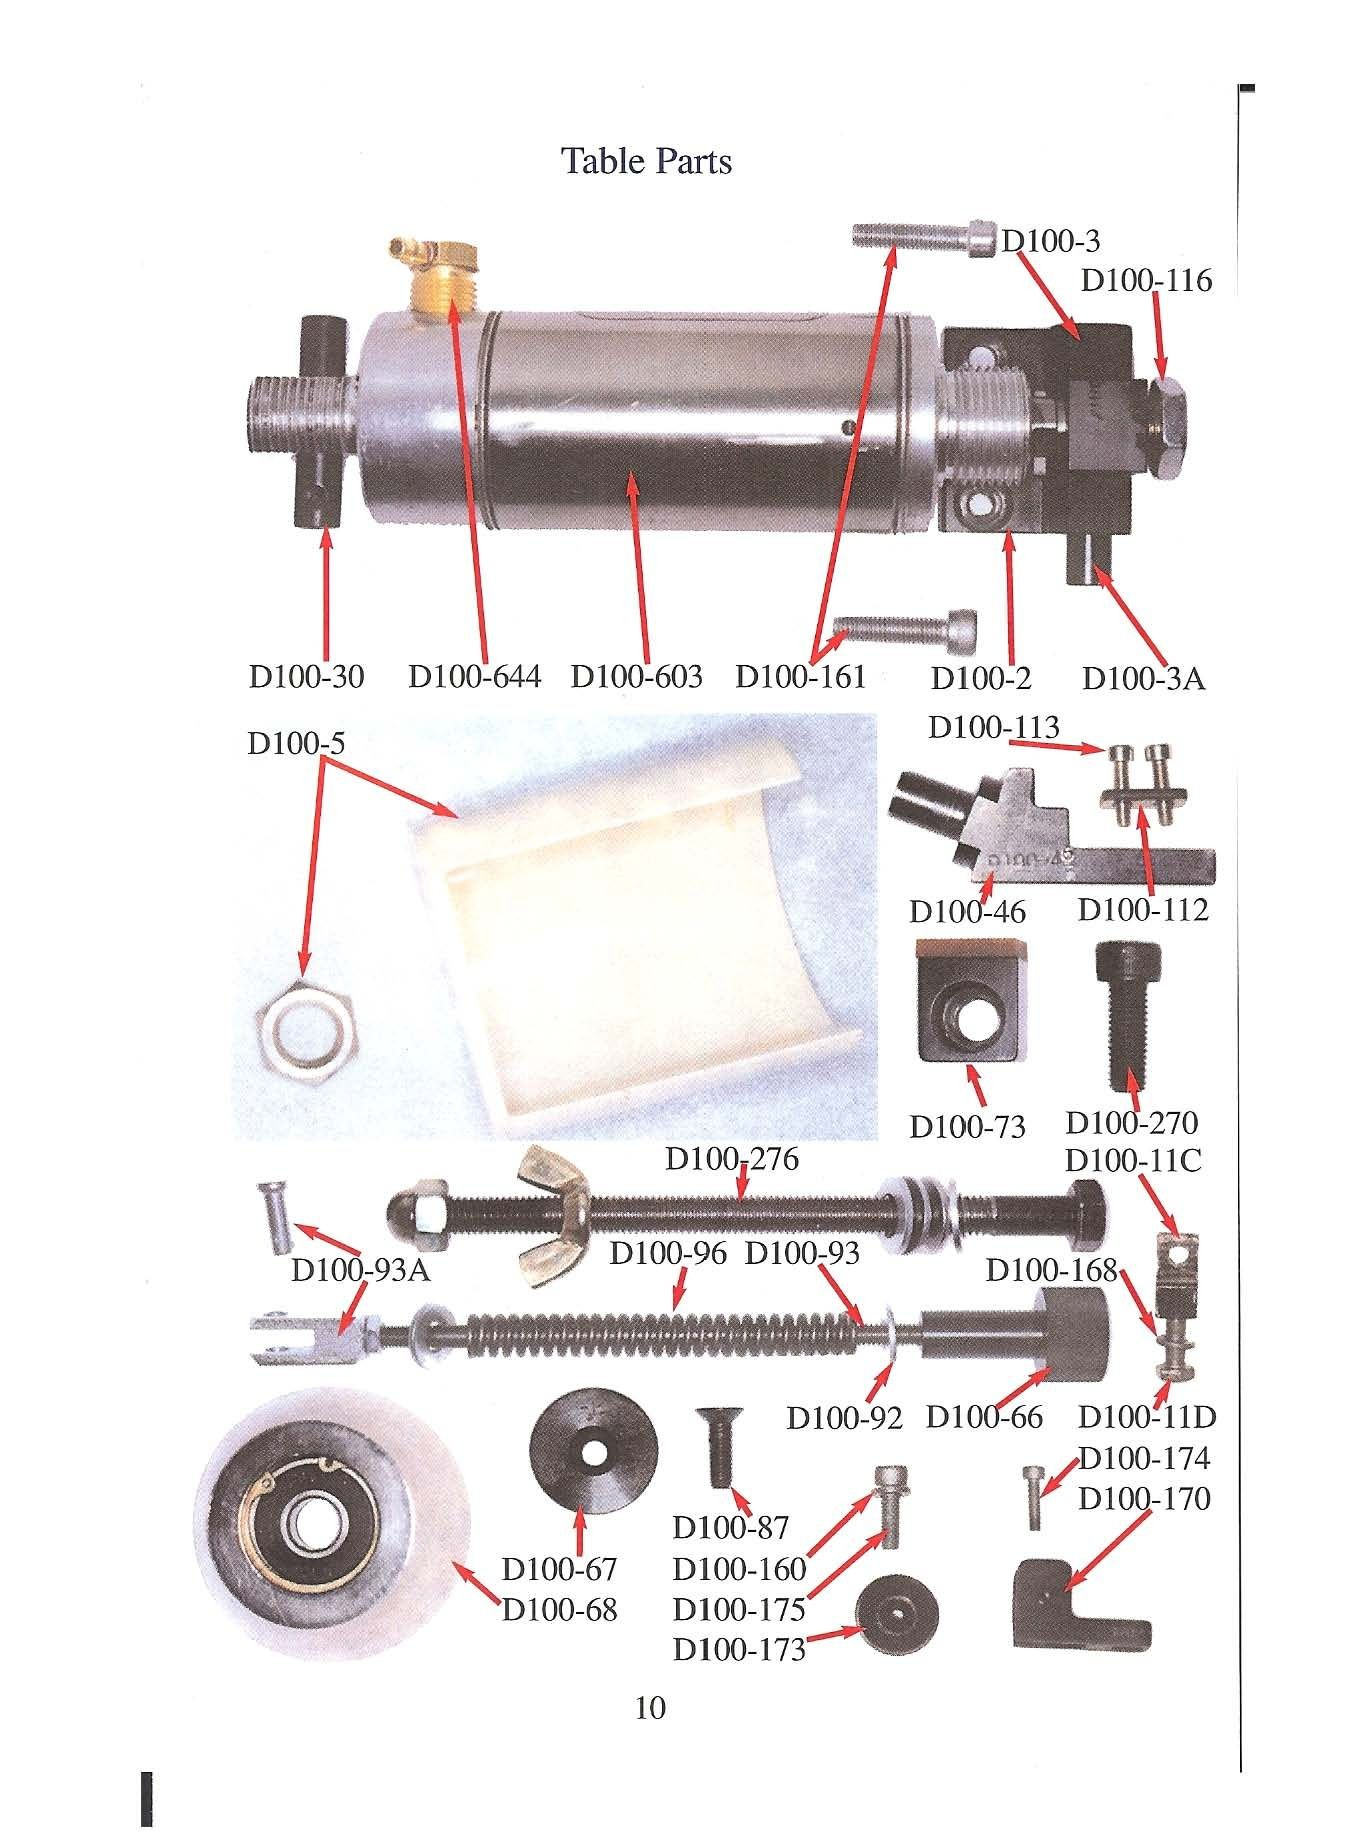 clutch system diagram sampson clutch parts of clutch system diagram clutch system diagram 1964 lincoln continental wiring diagram 1964